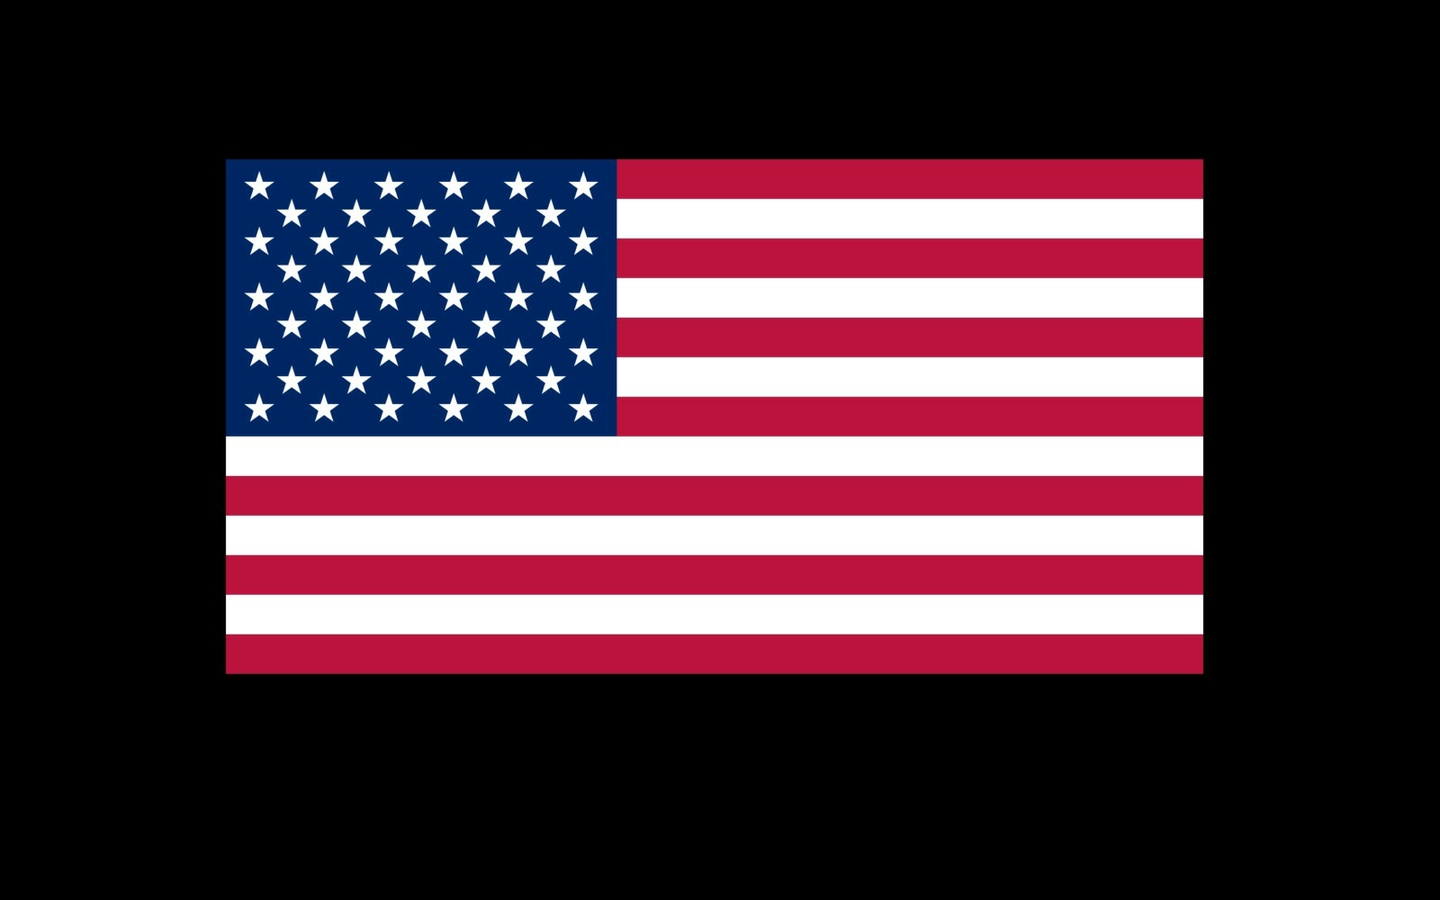 Usa Flag Download Clip Art Clip Art on Clipart 1440x900